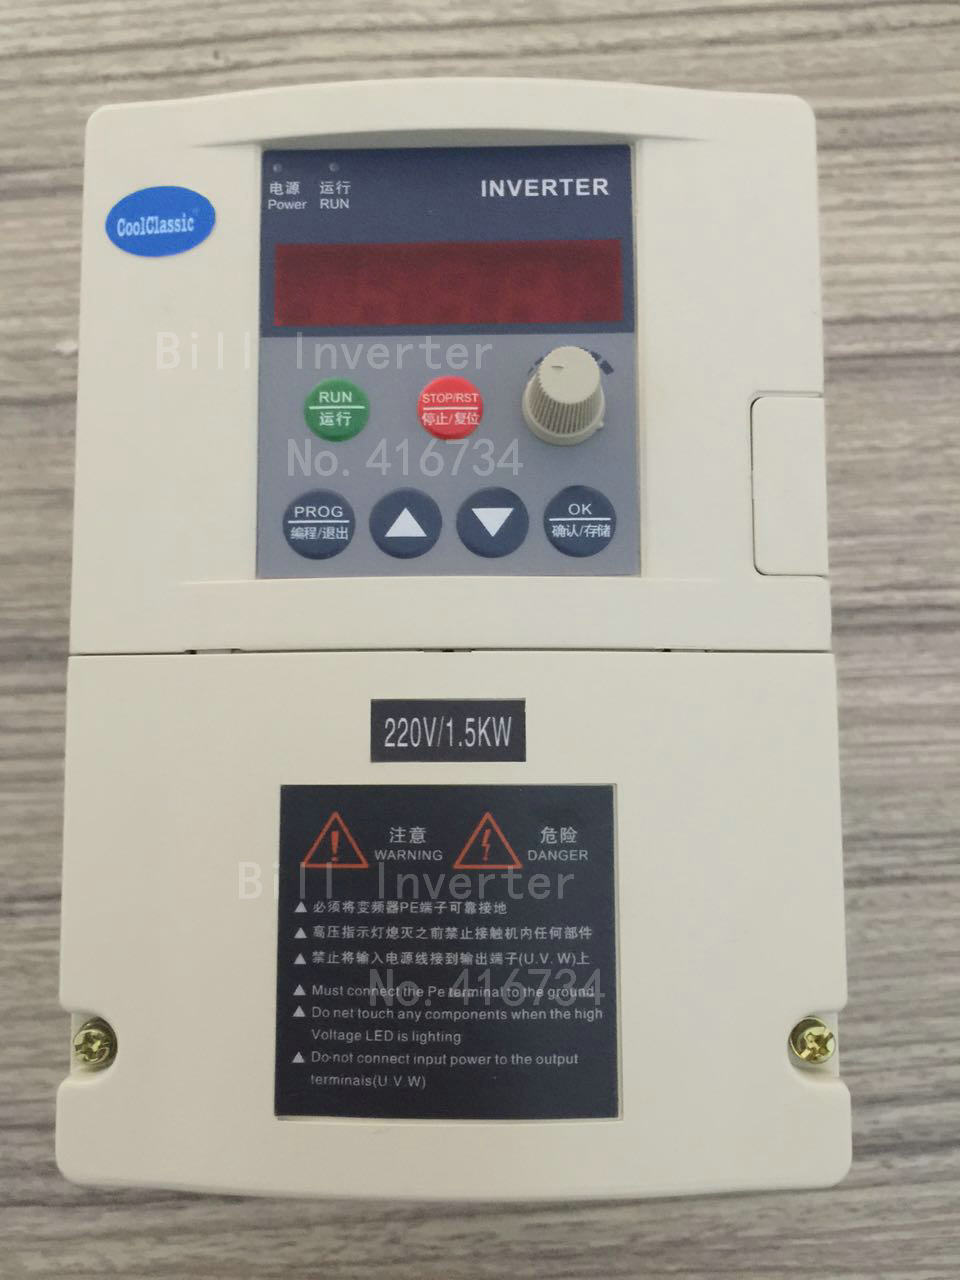 Vfd inverter coolclassic zw s2015 inverter jfd 1500w for Inverter for 3 phase motor